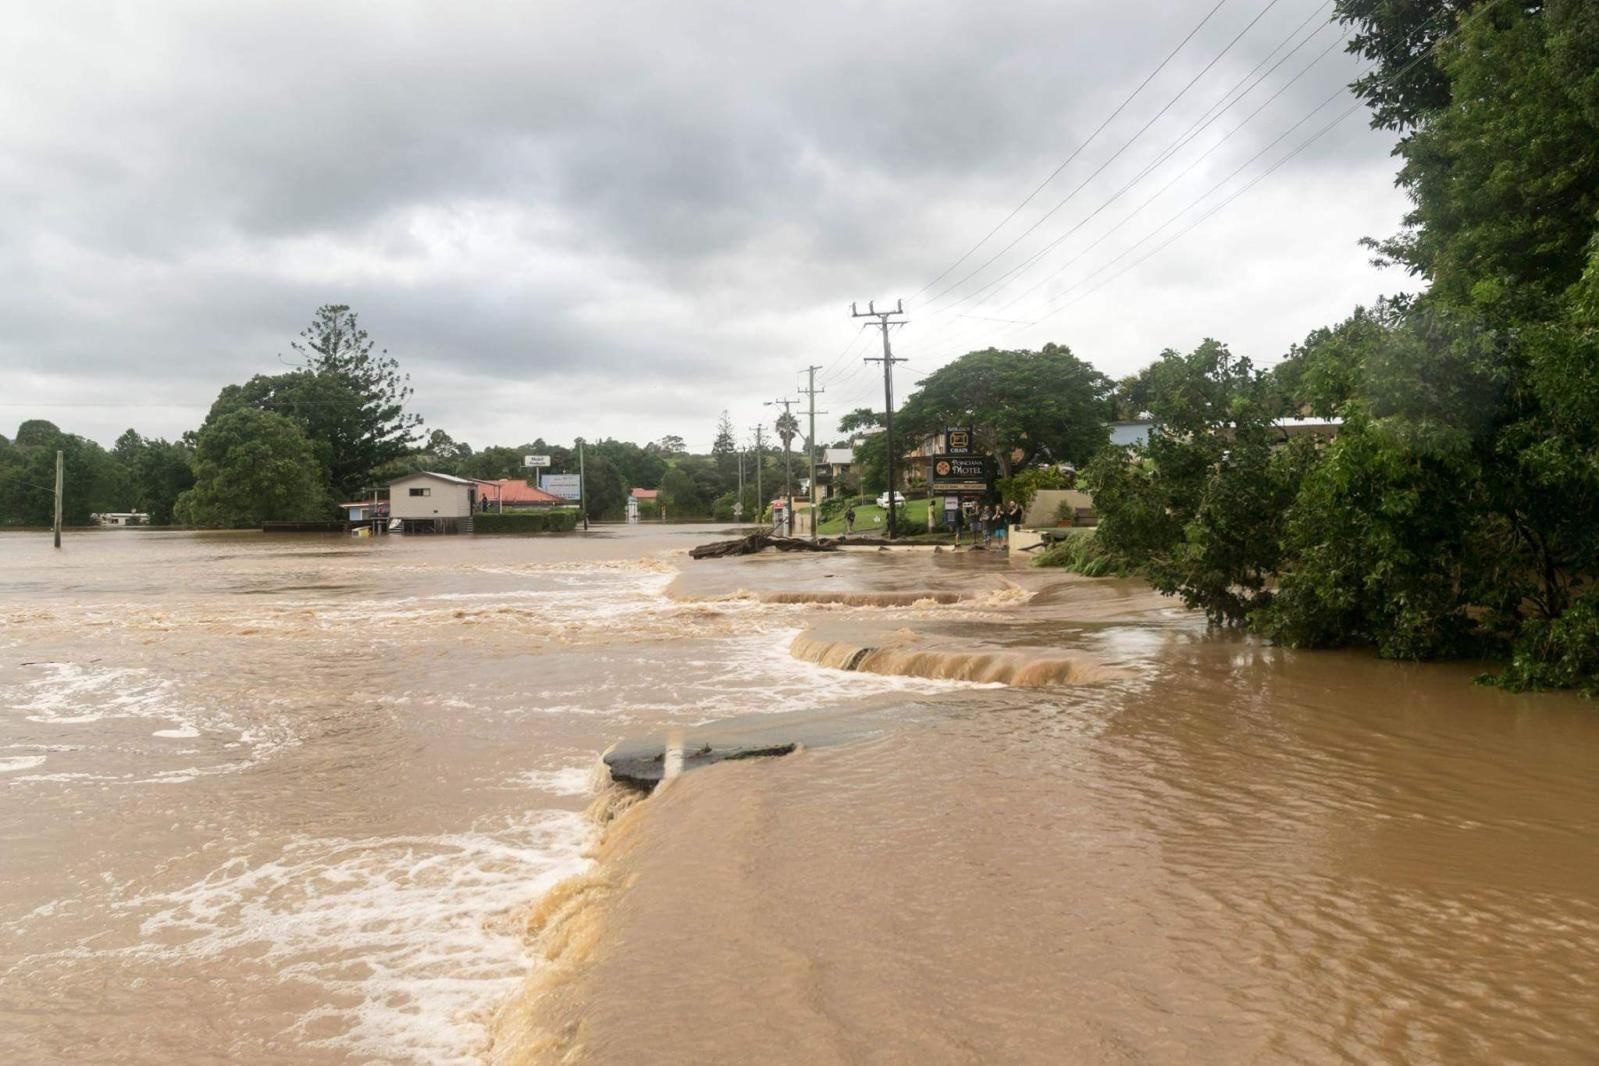 Police say body found in NSW flood